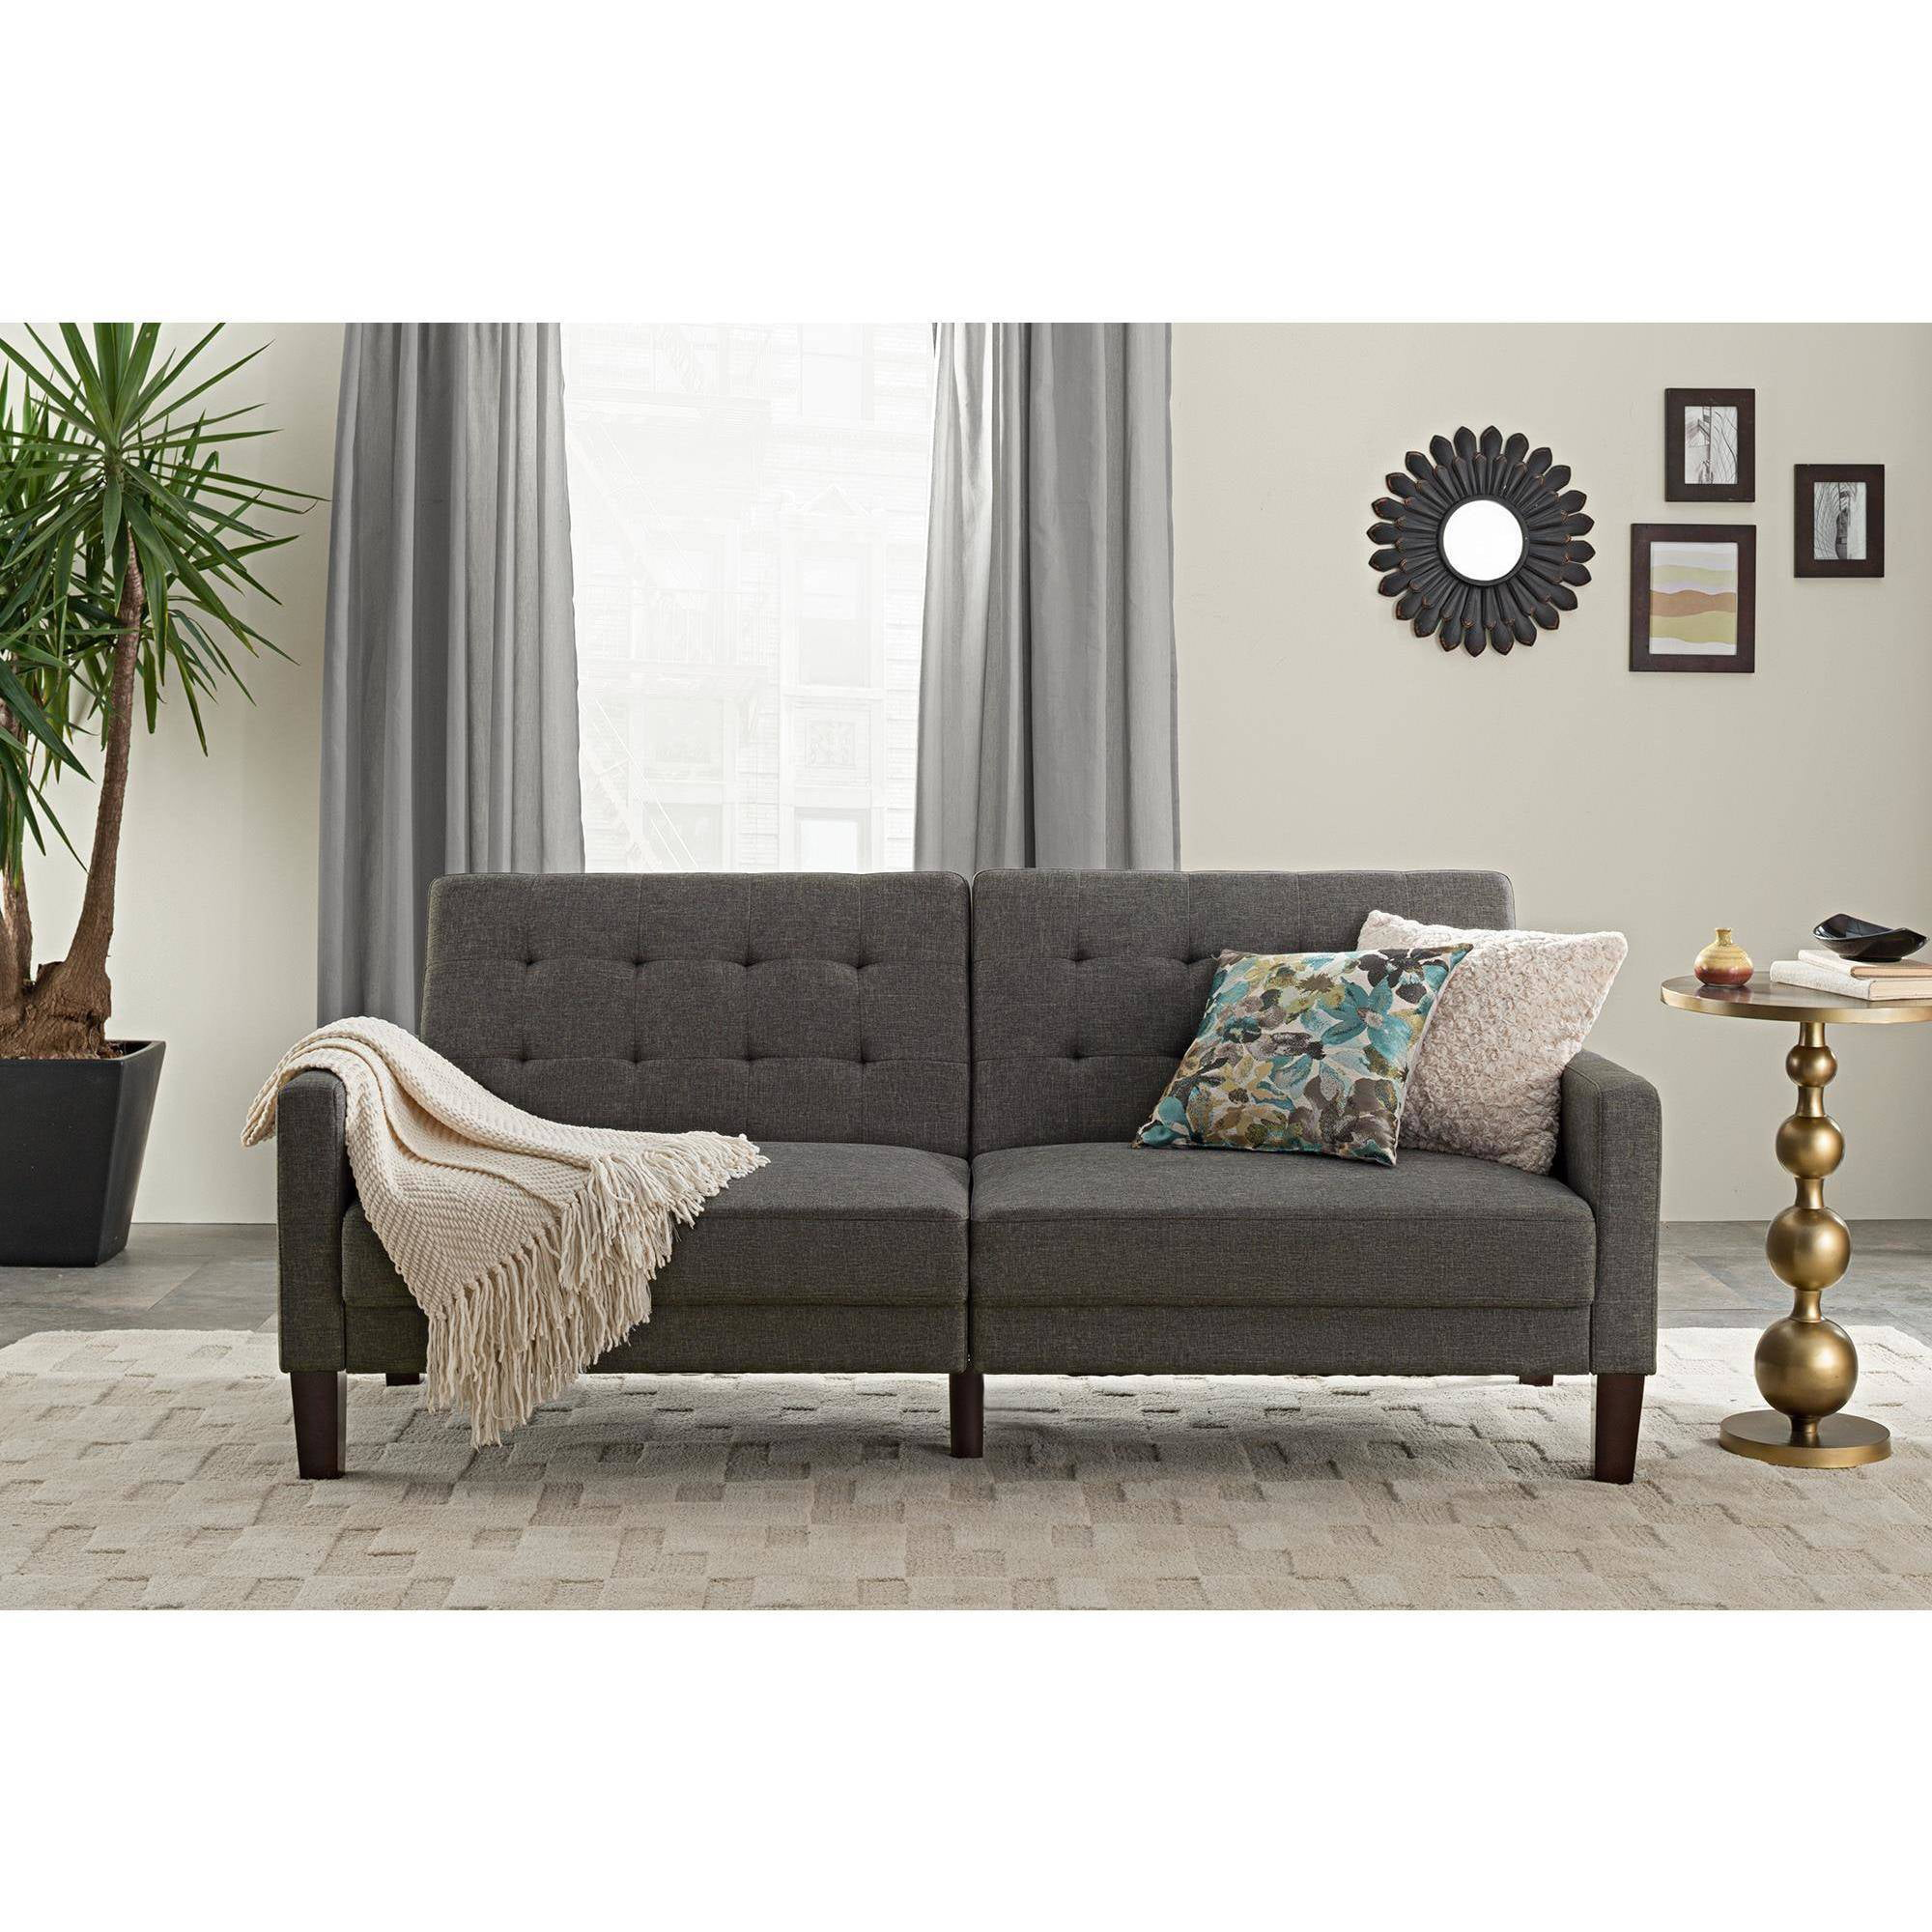 Mainstays Baja Futon Sofa Sleeper Bed Multiple Colors Walmartcom